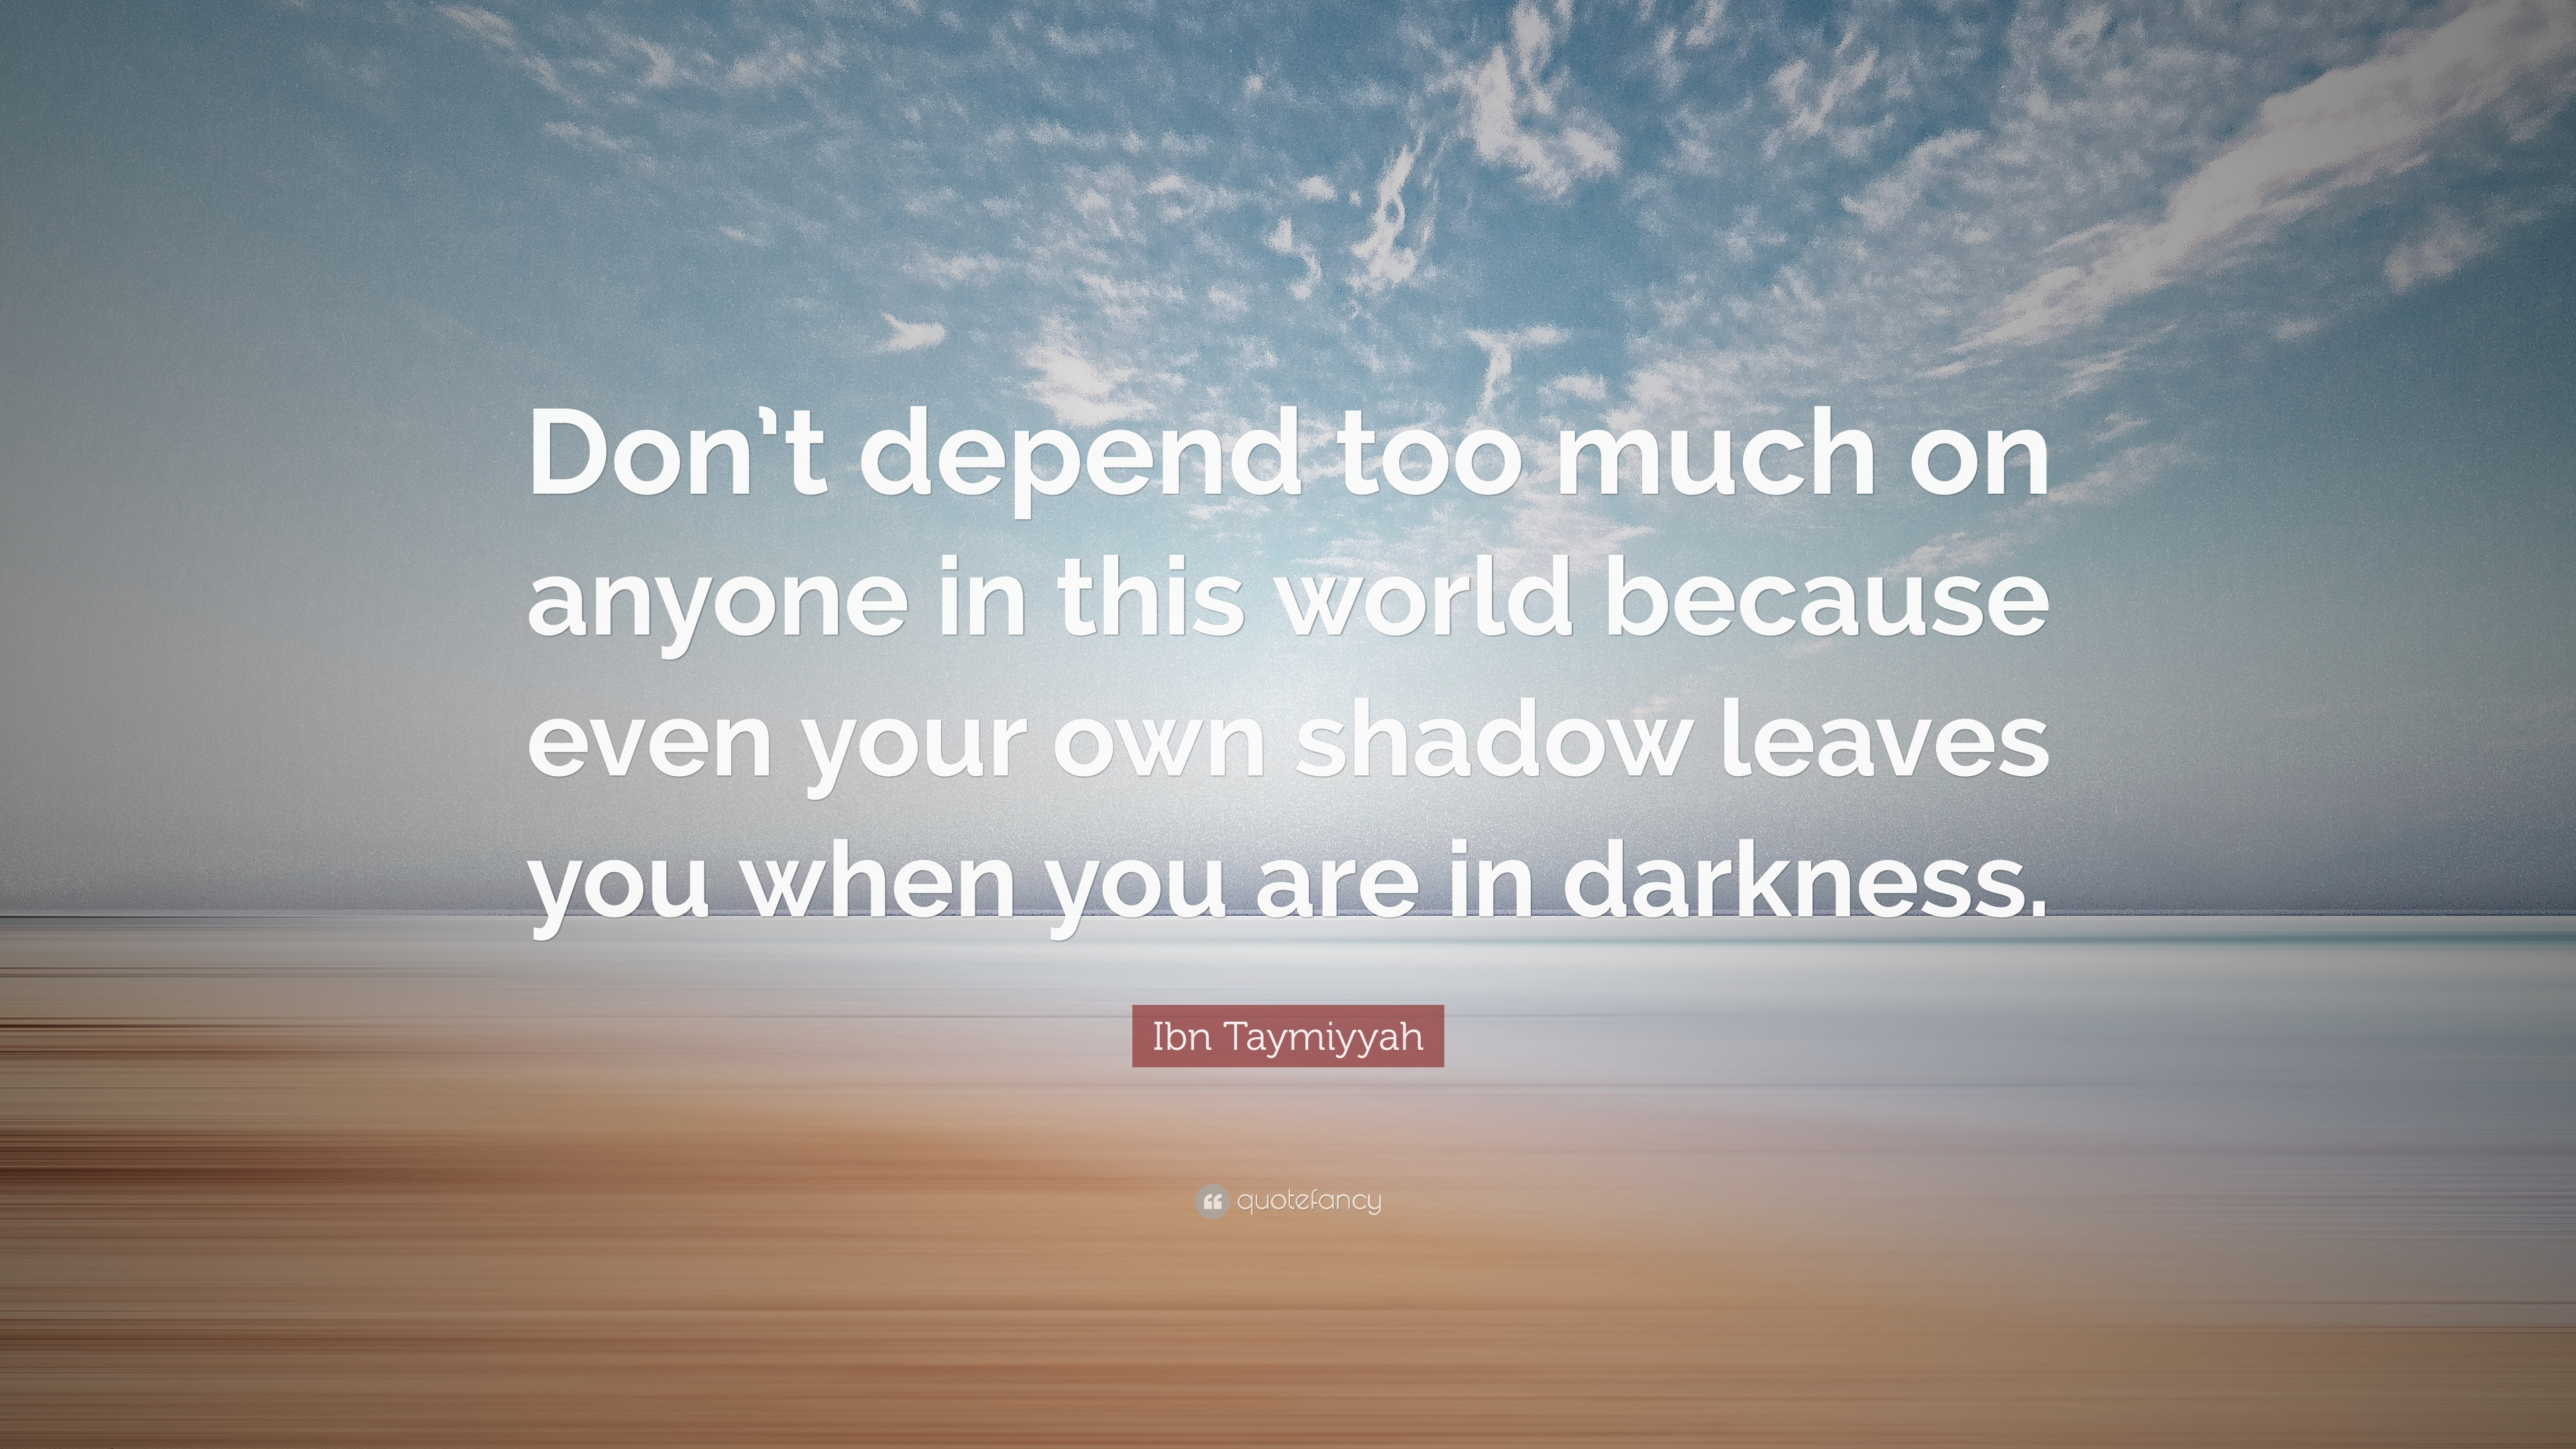 Ibn Taymiyyah Quote Dont Depend Too Much On Anyone In This World